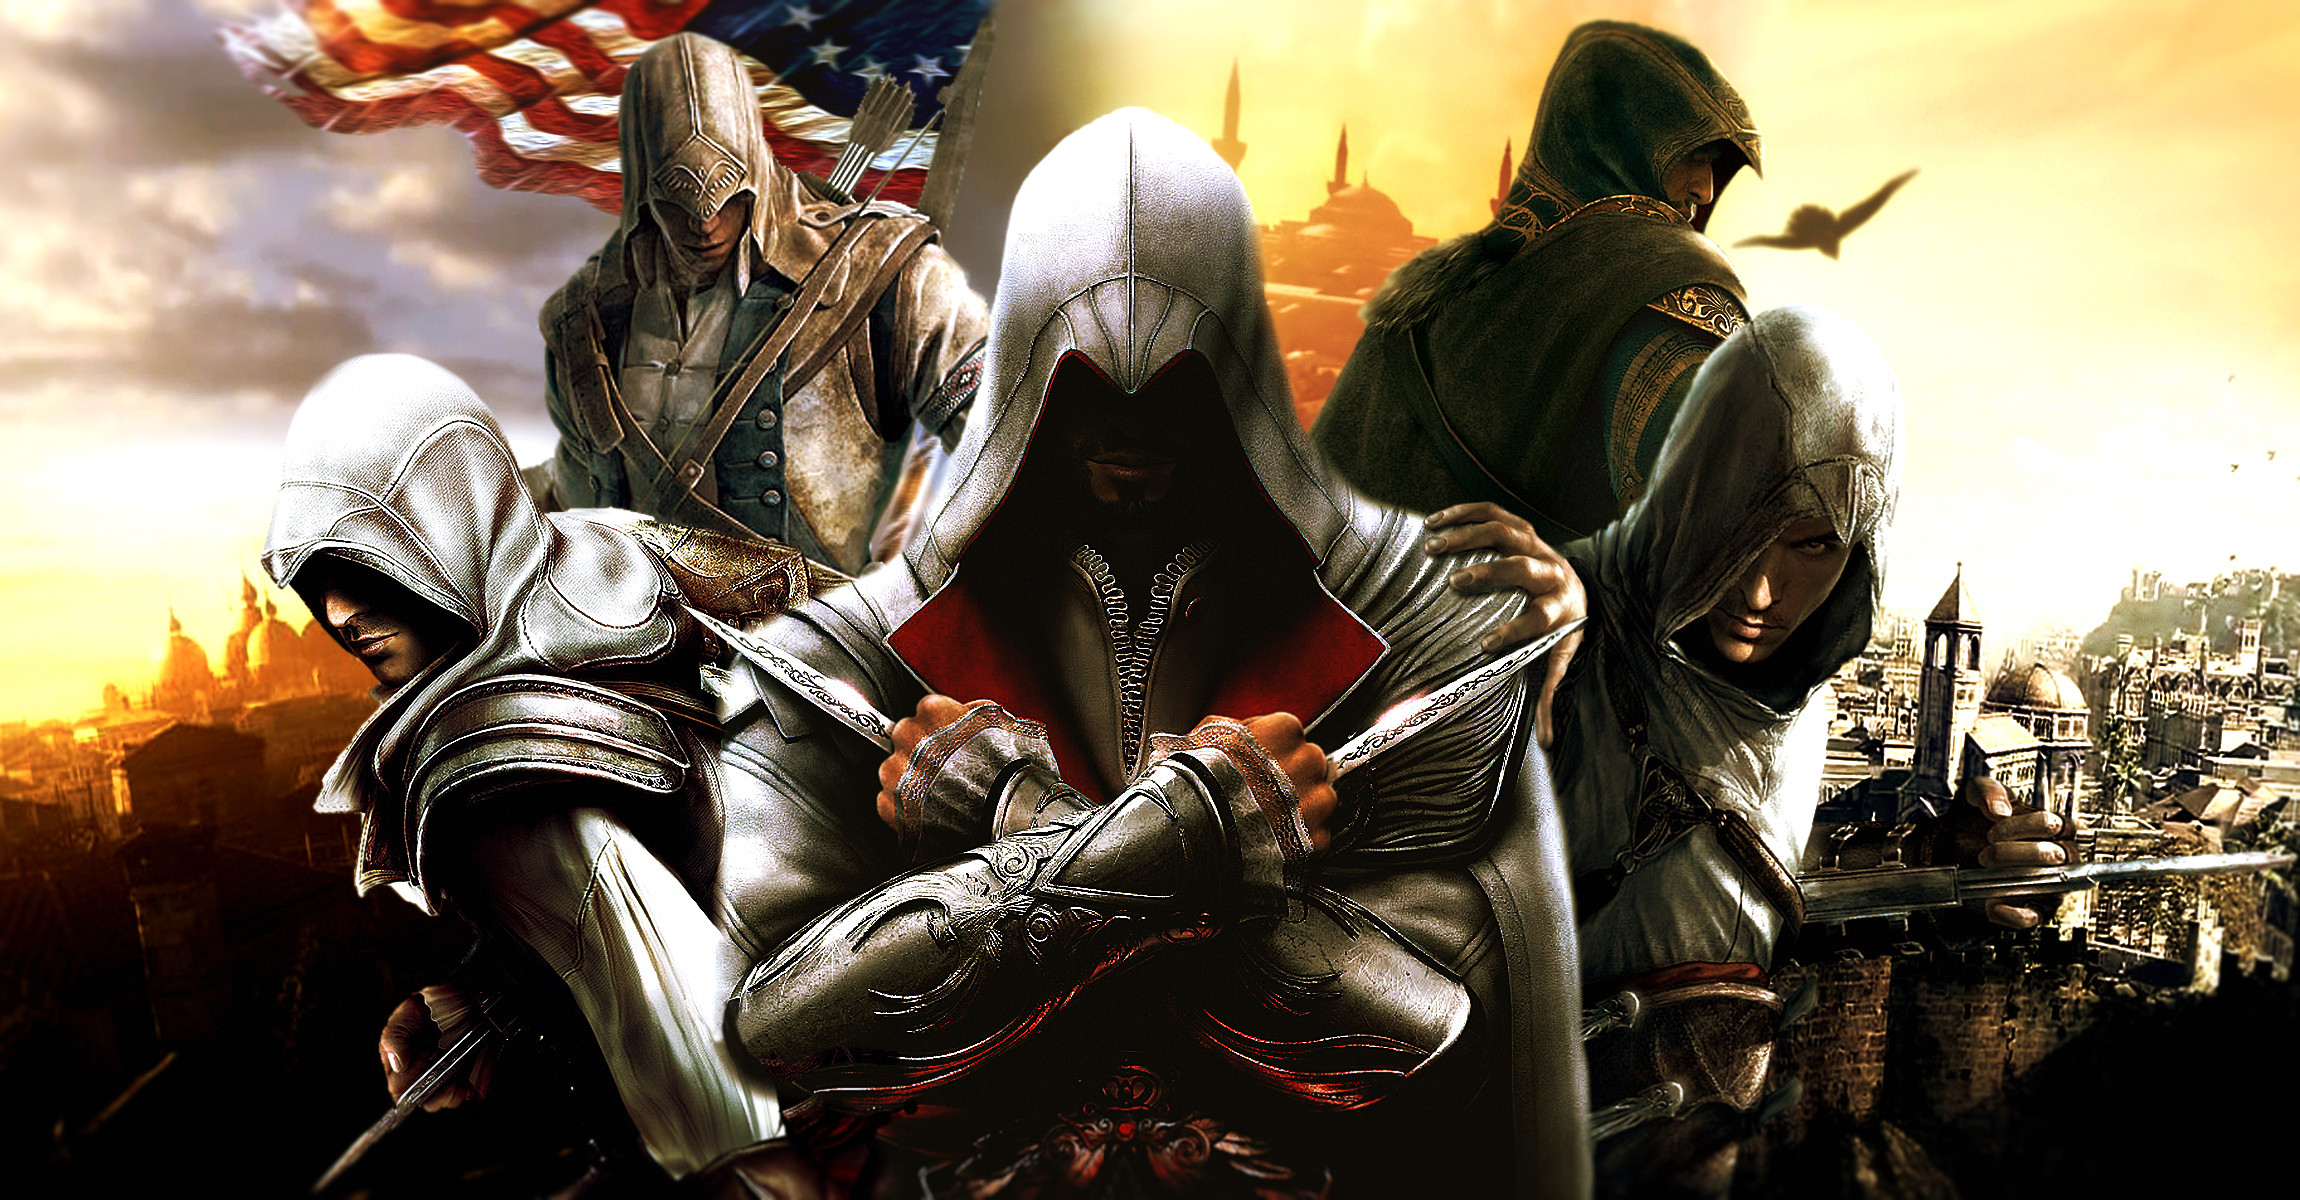 2300x1200 Computerspiele - Assassin's Creed Ezio (Assassin's Creed) Altair (Assassin's  Creed) Conor Wallpaper